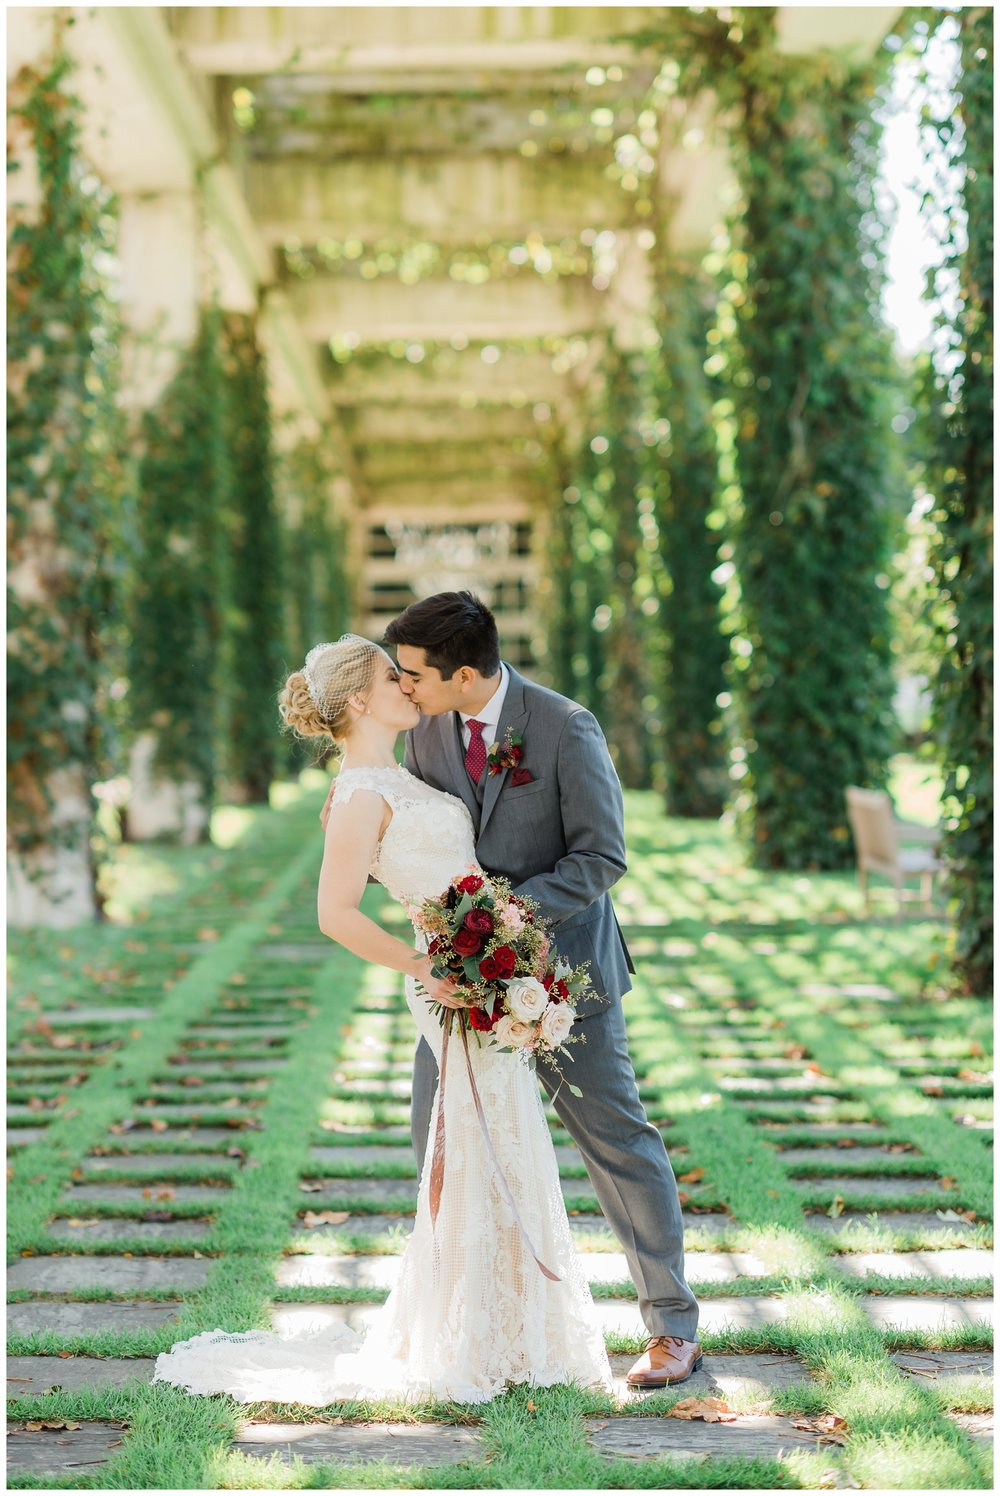 Rebecca_Shehorn_Photography_Indianapolis_Wedding_Photographer_7335.jpg